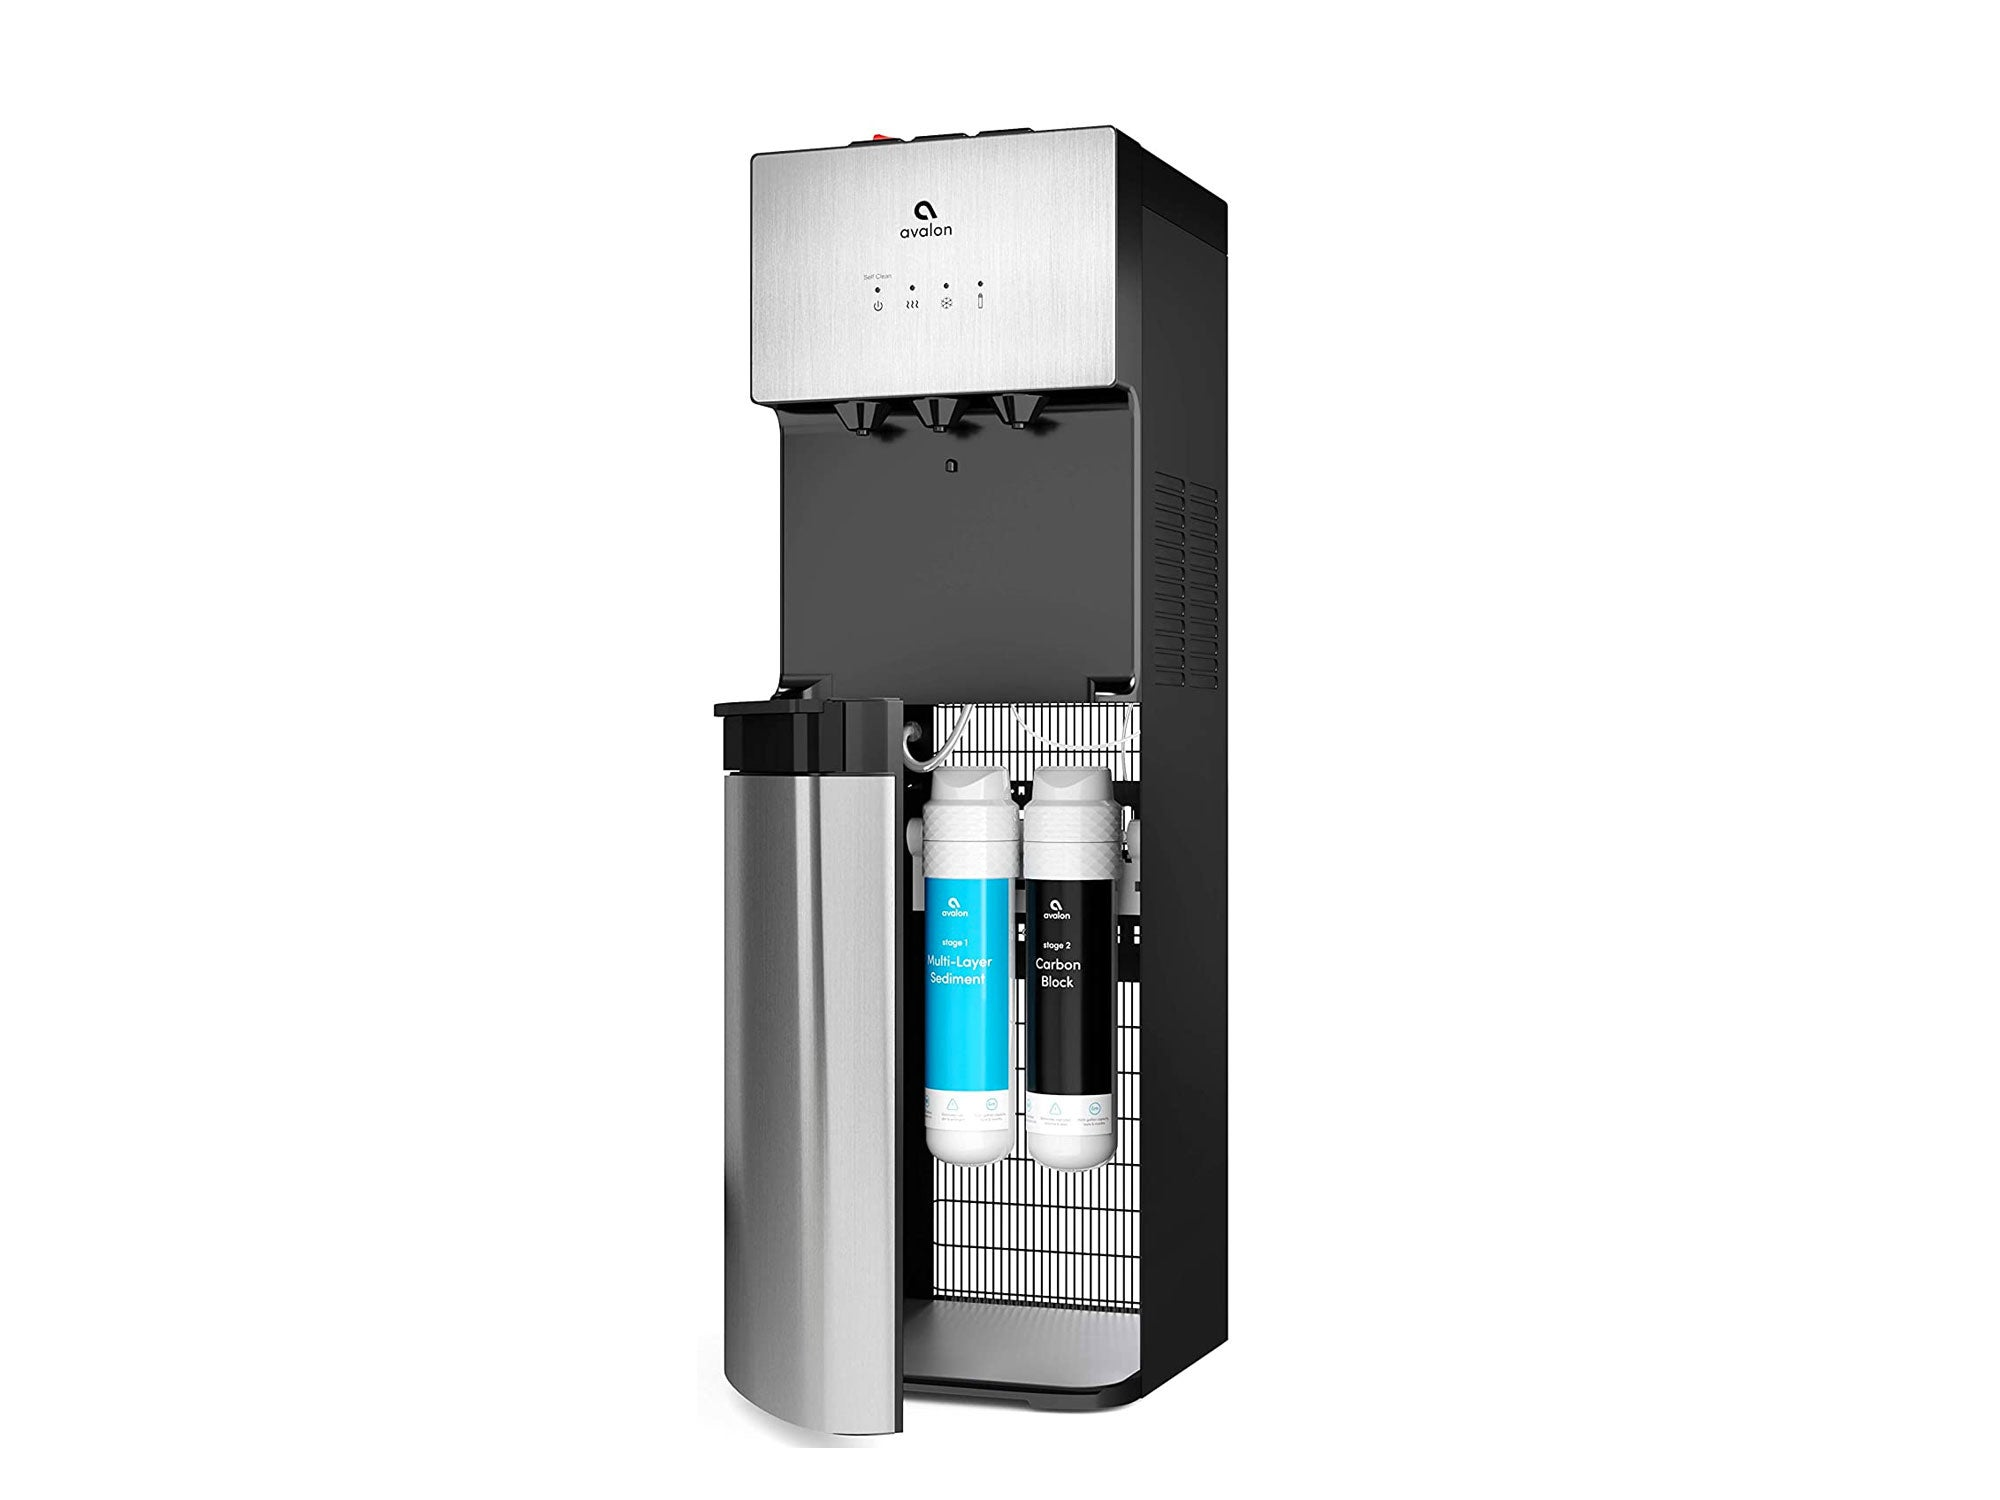 Avalon A5 Self Cleaning Bottleless Water Cooler Dispenser